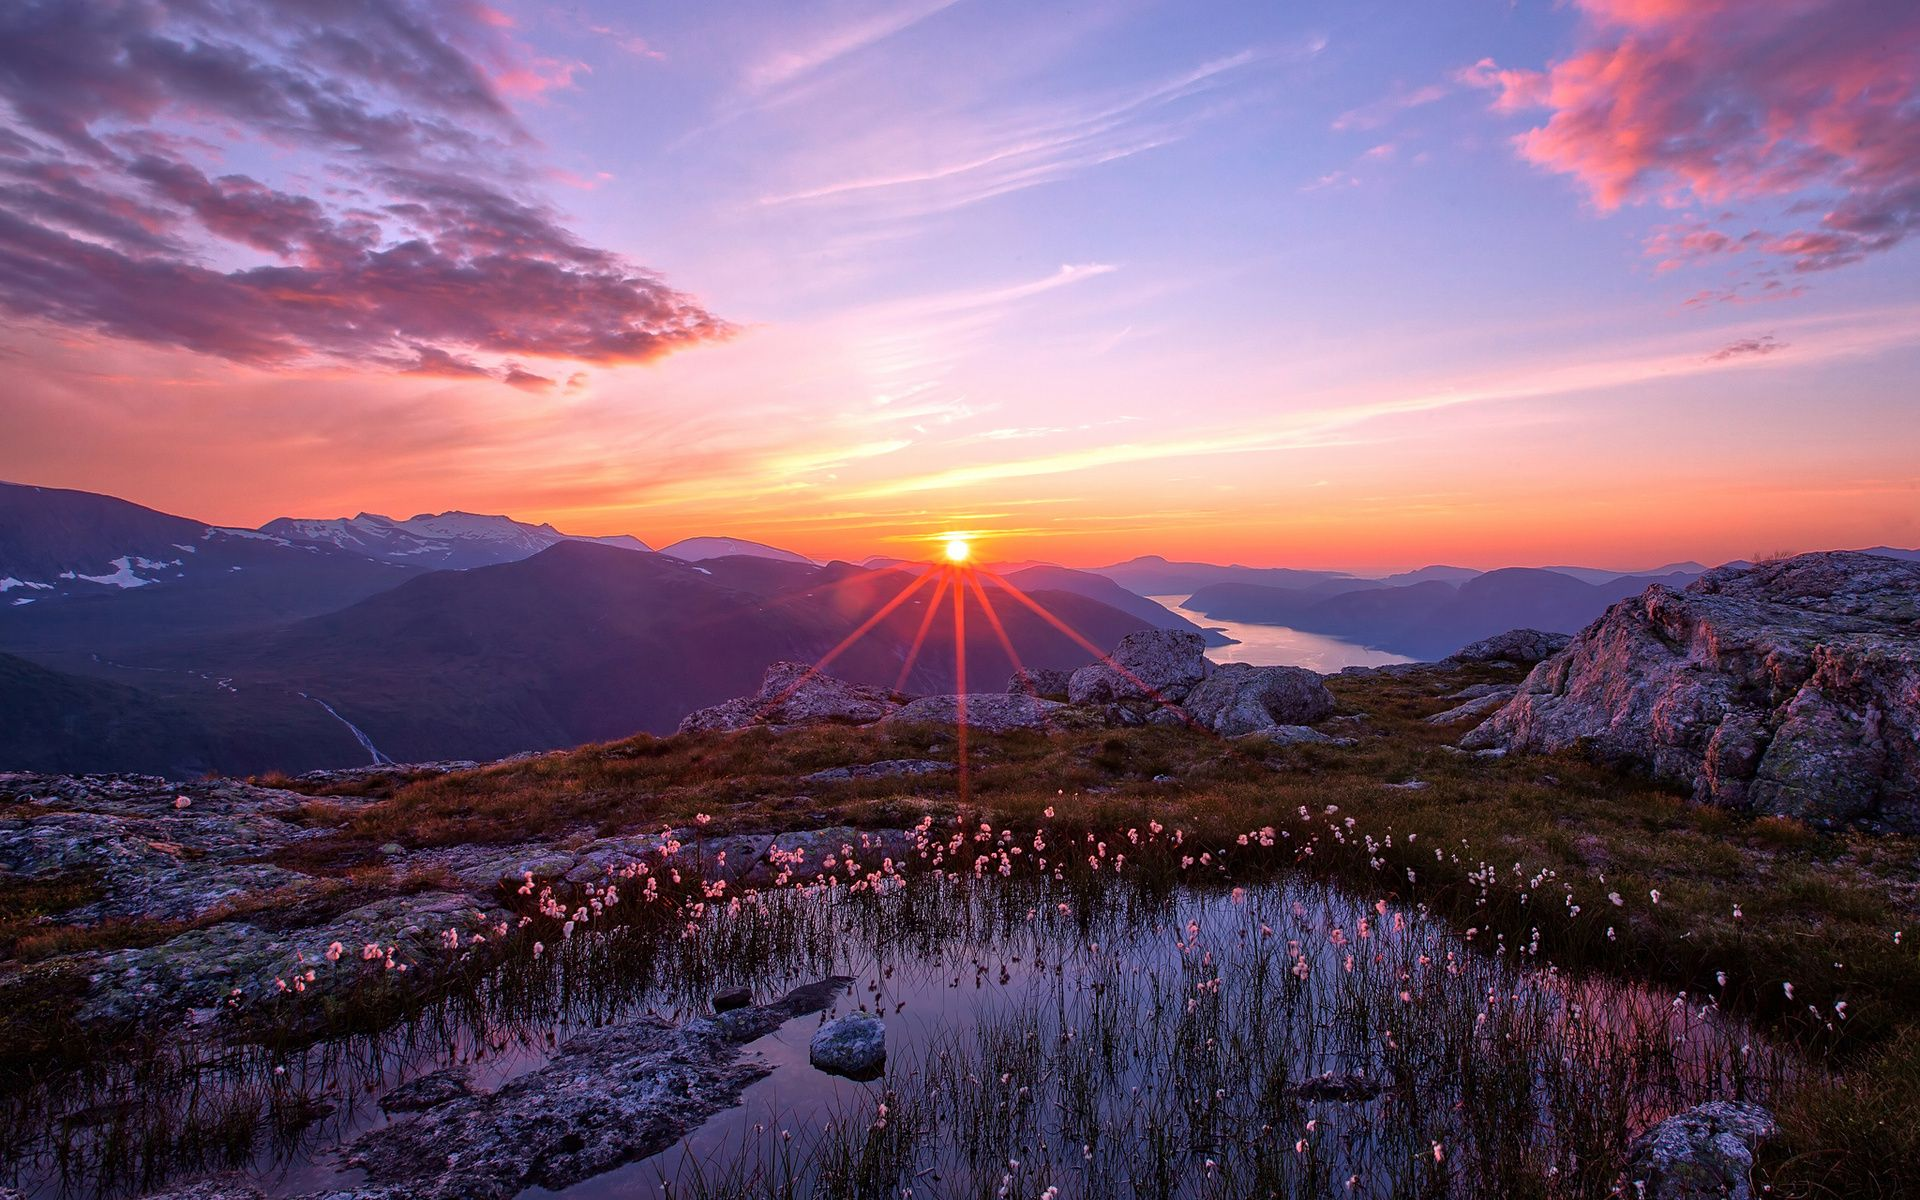 Image For Landscape Sunset Mountain Free Wallpaper